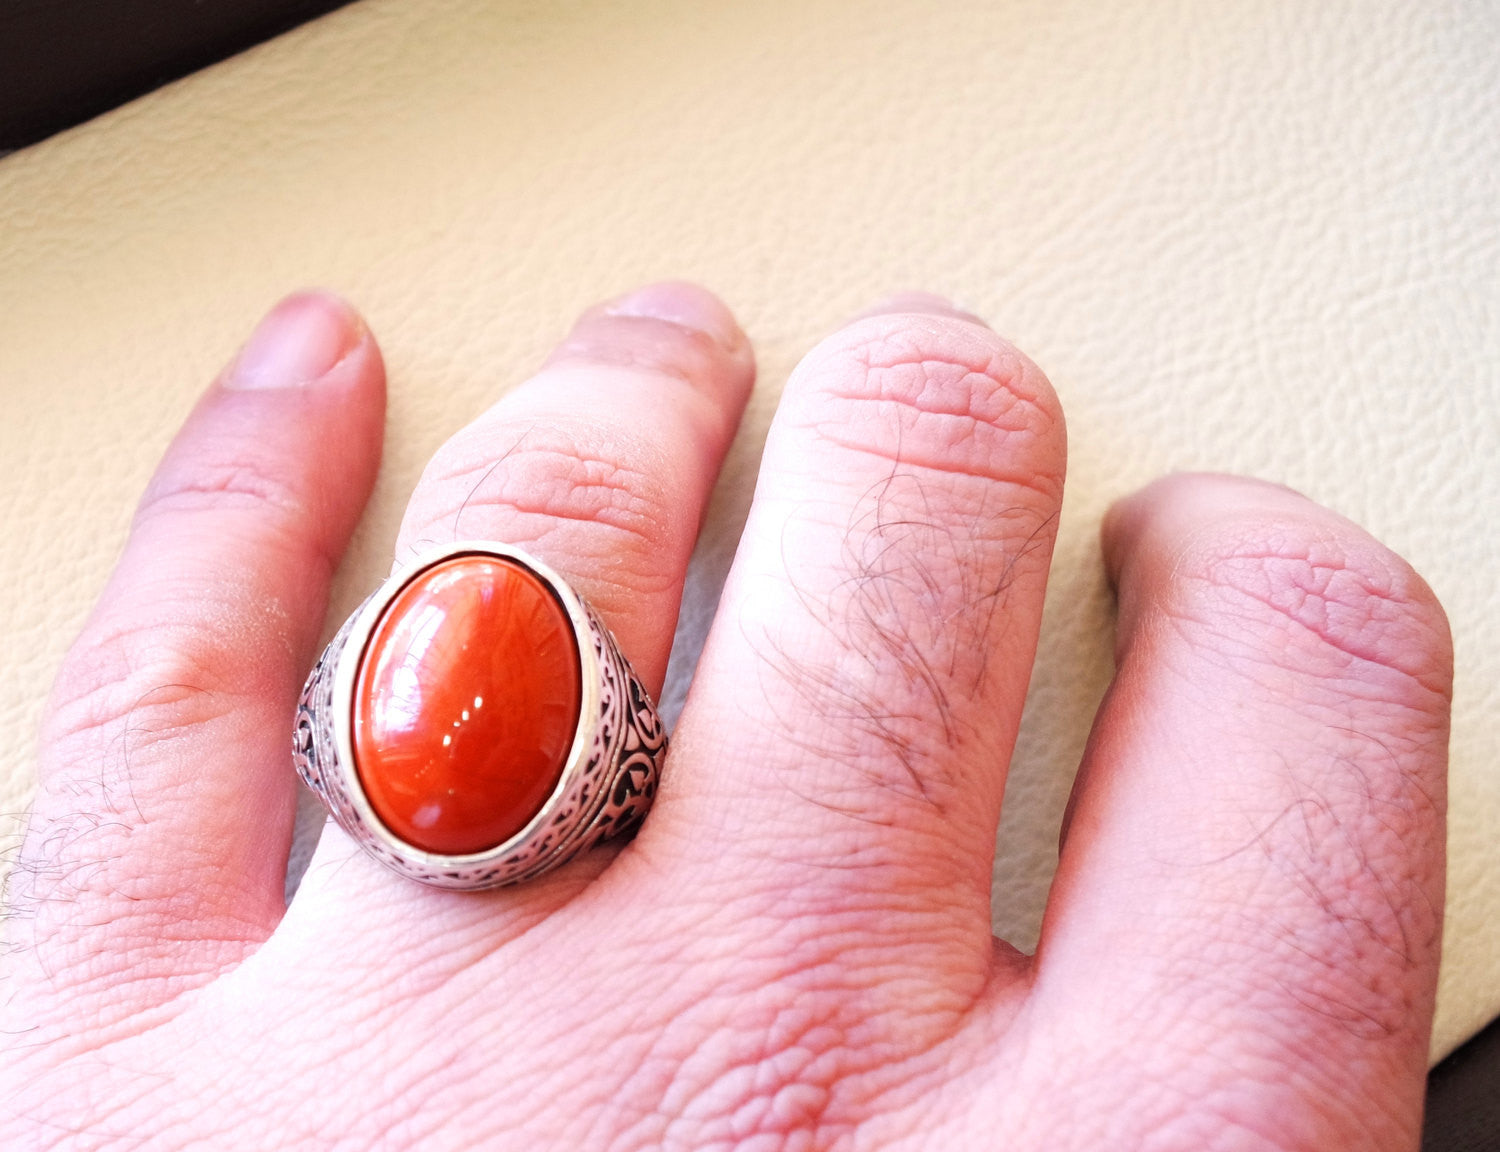 pure red jasper man ring stone natural aqeeq gem sterling silver 925 ring oval semi precious cabochon jewelry fast shipping all sizes